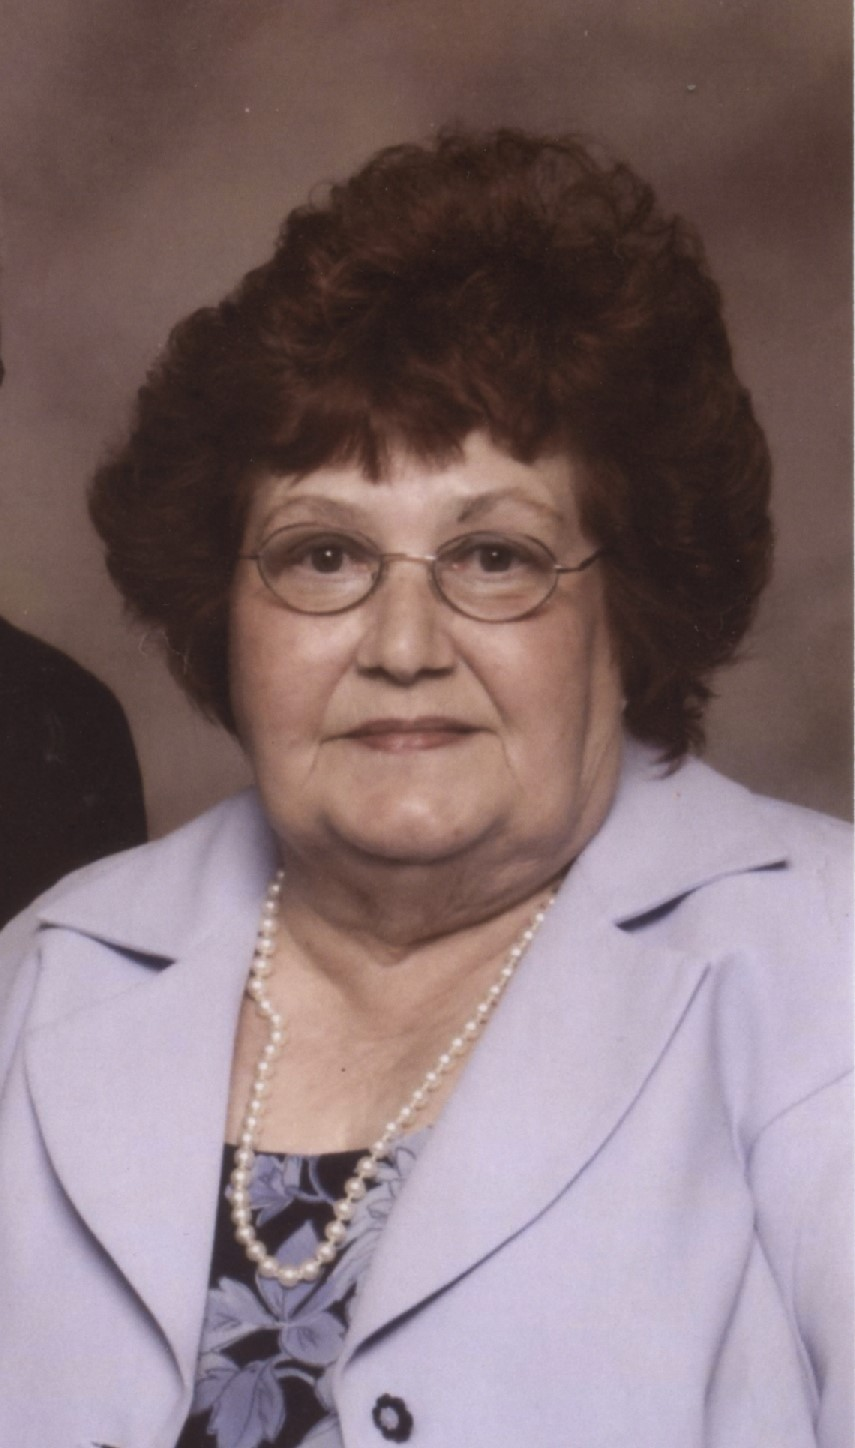 Mary Ann Barkley, age 79, of Huntingburg